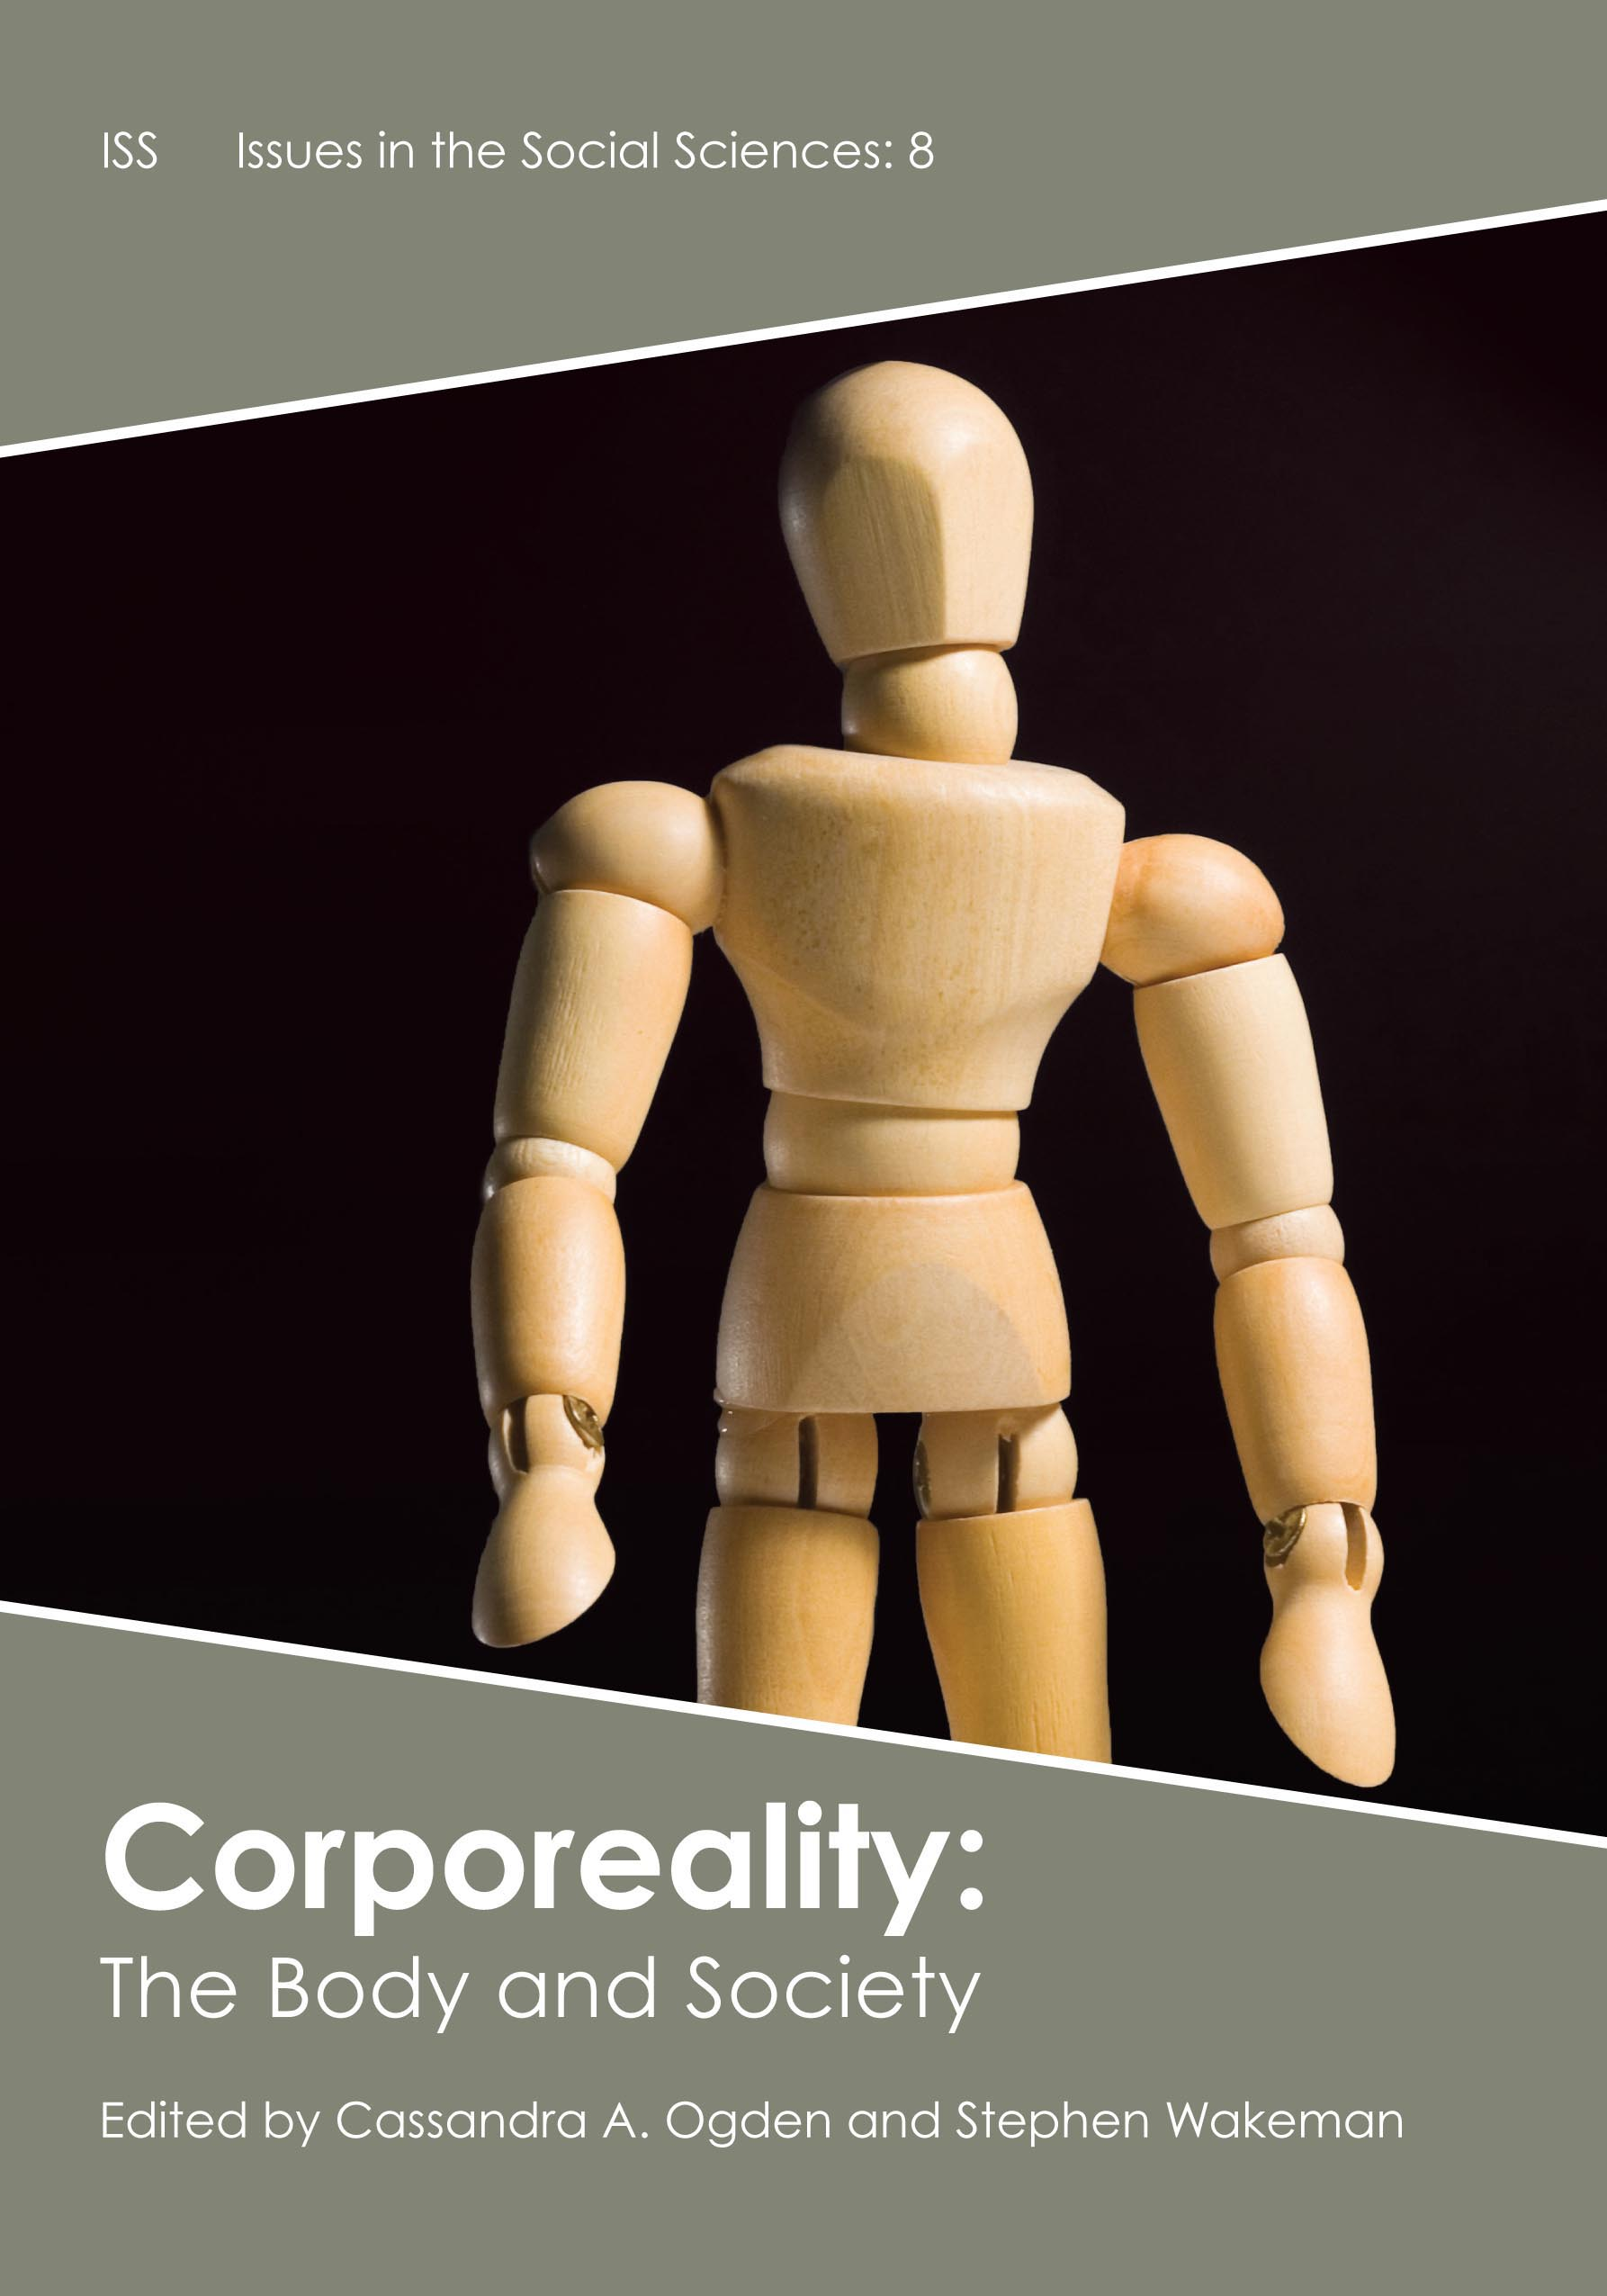 Corporeality: The Body and Society